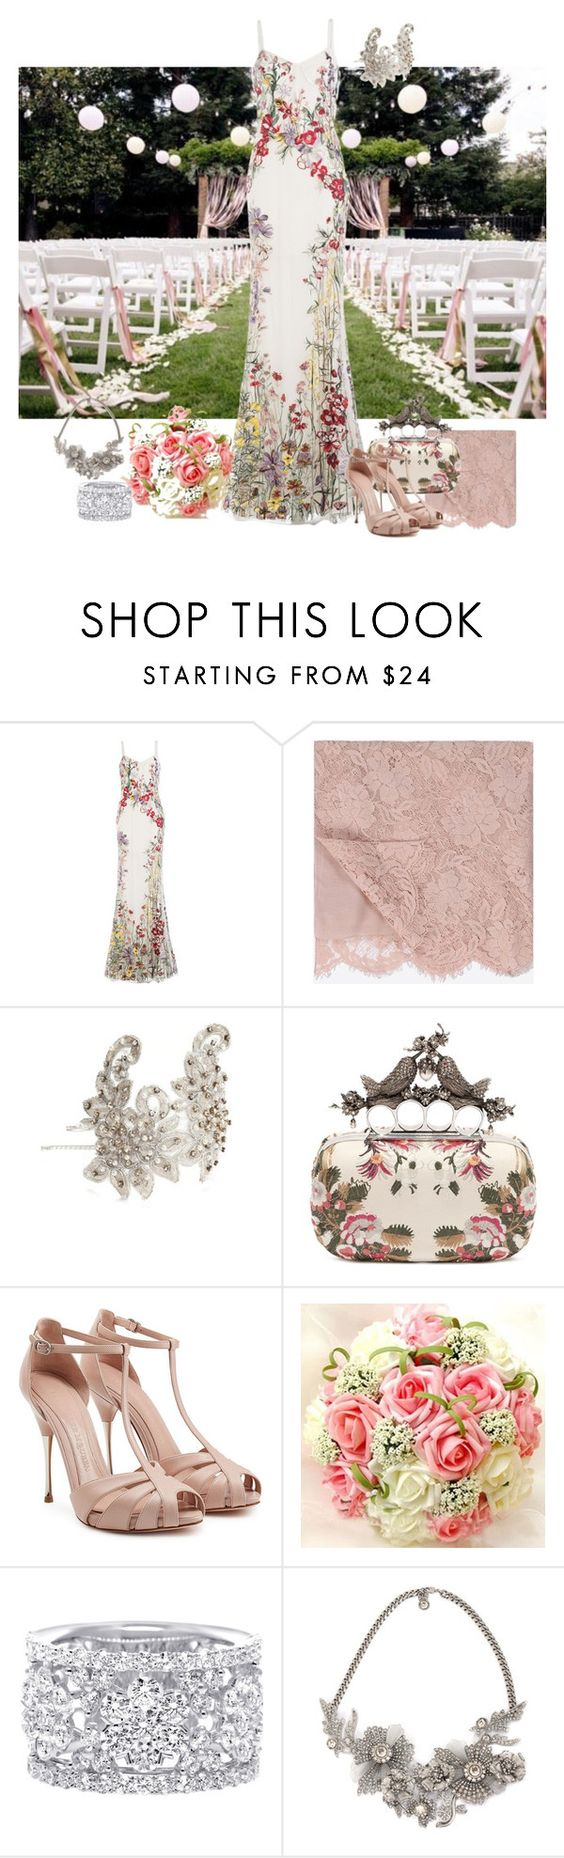 """""""Wedding"""" by eva-kouliaridou ❤ liked on Polyvore featuring Alexander McQueen, Valentino and Giovannio"""